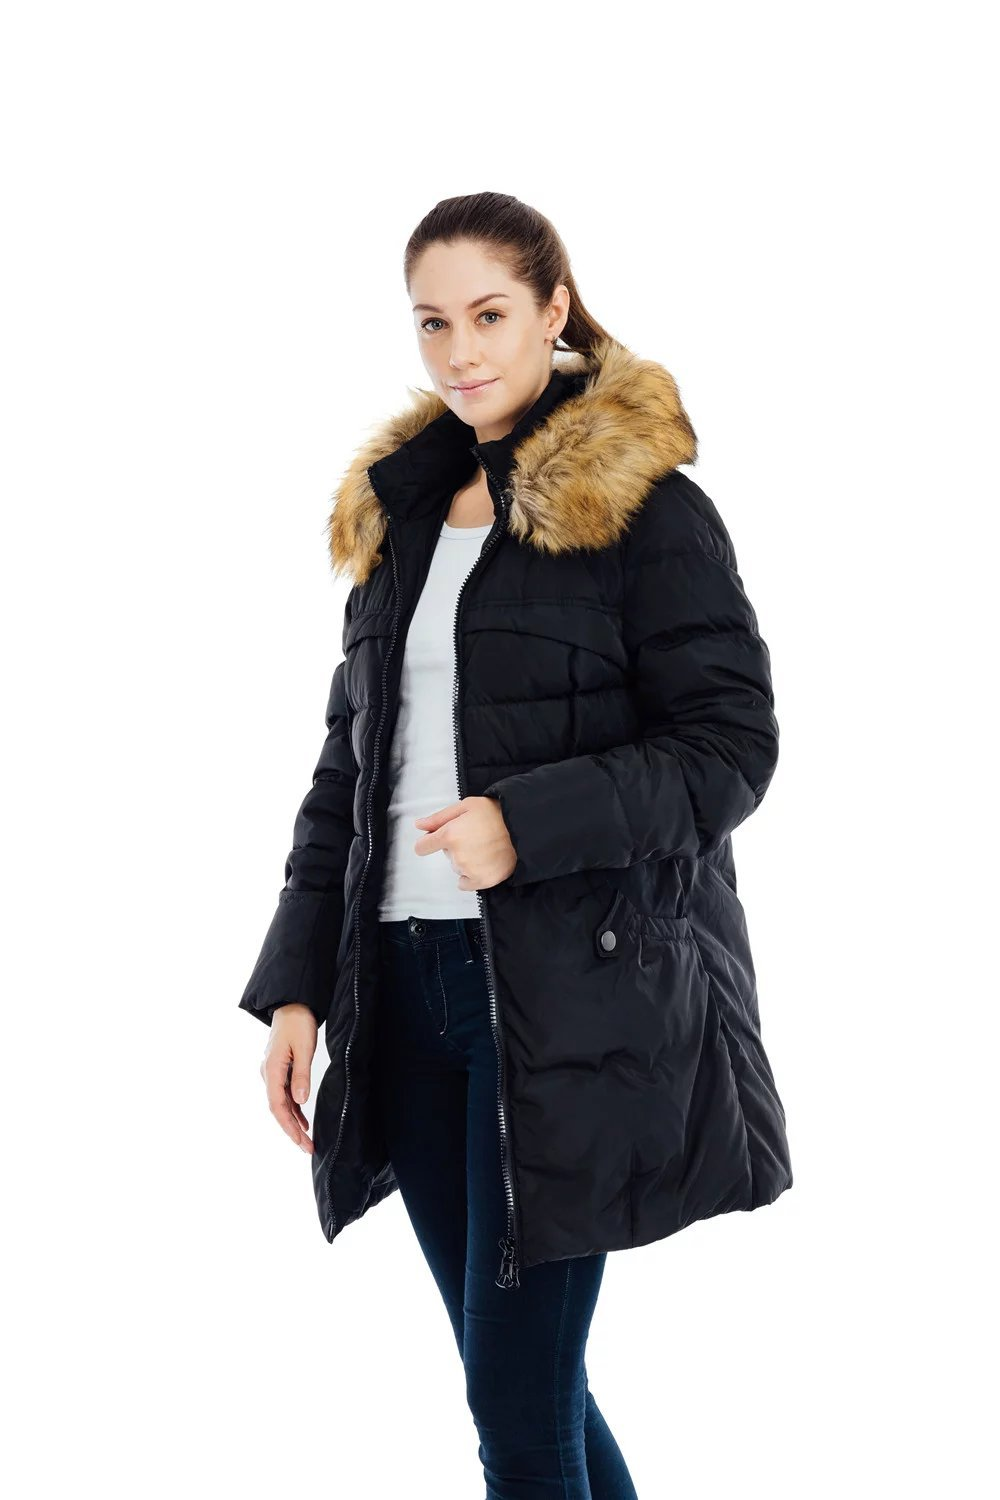 Valuker Women's Down Coat with Fur Hood 90D Parka Puffer Jacket 57-Black-XL by Valuker (Image #5)